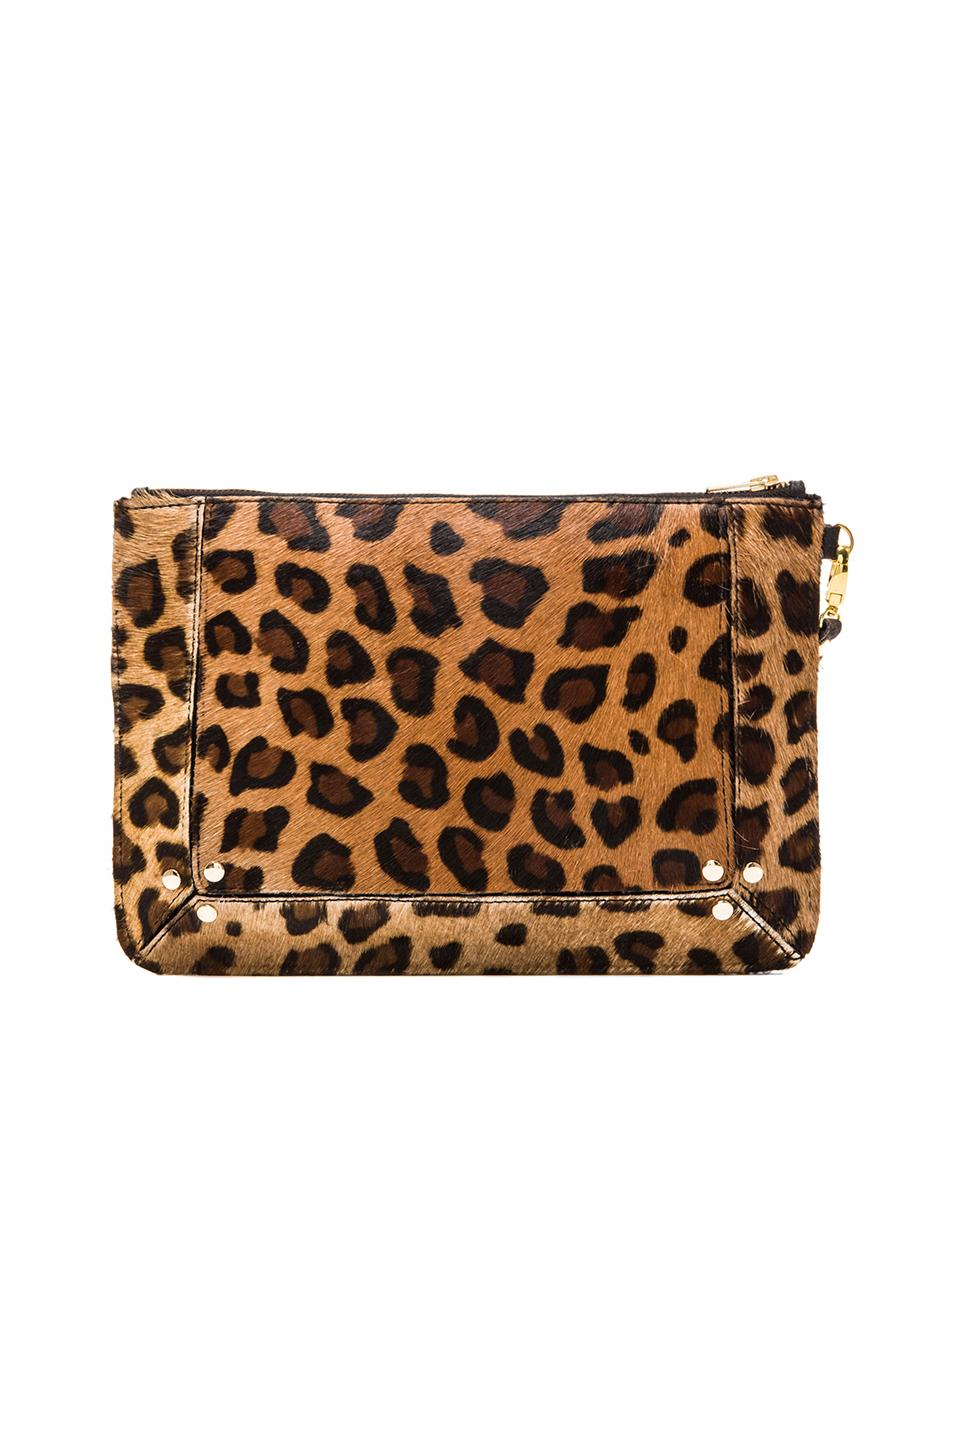 Elliott Label Clutch In Leopard in Leopard | REVOLVE